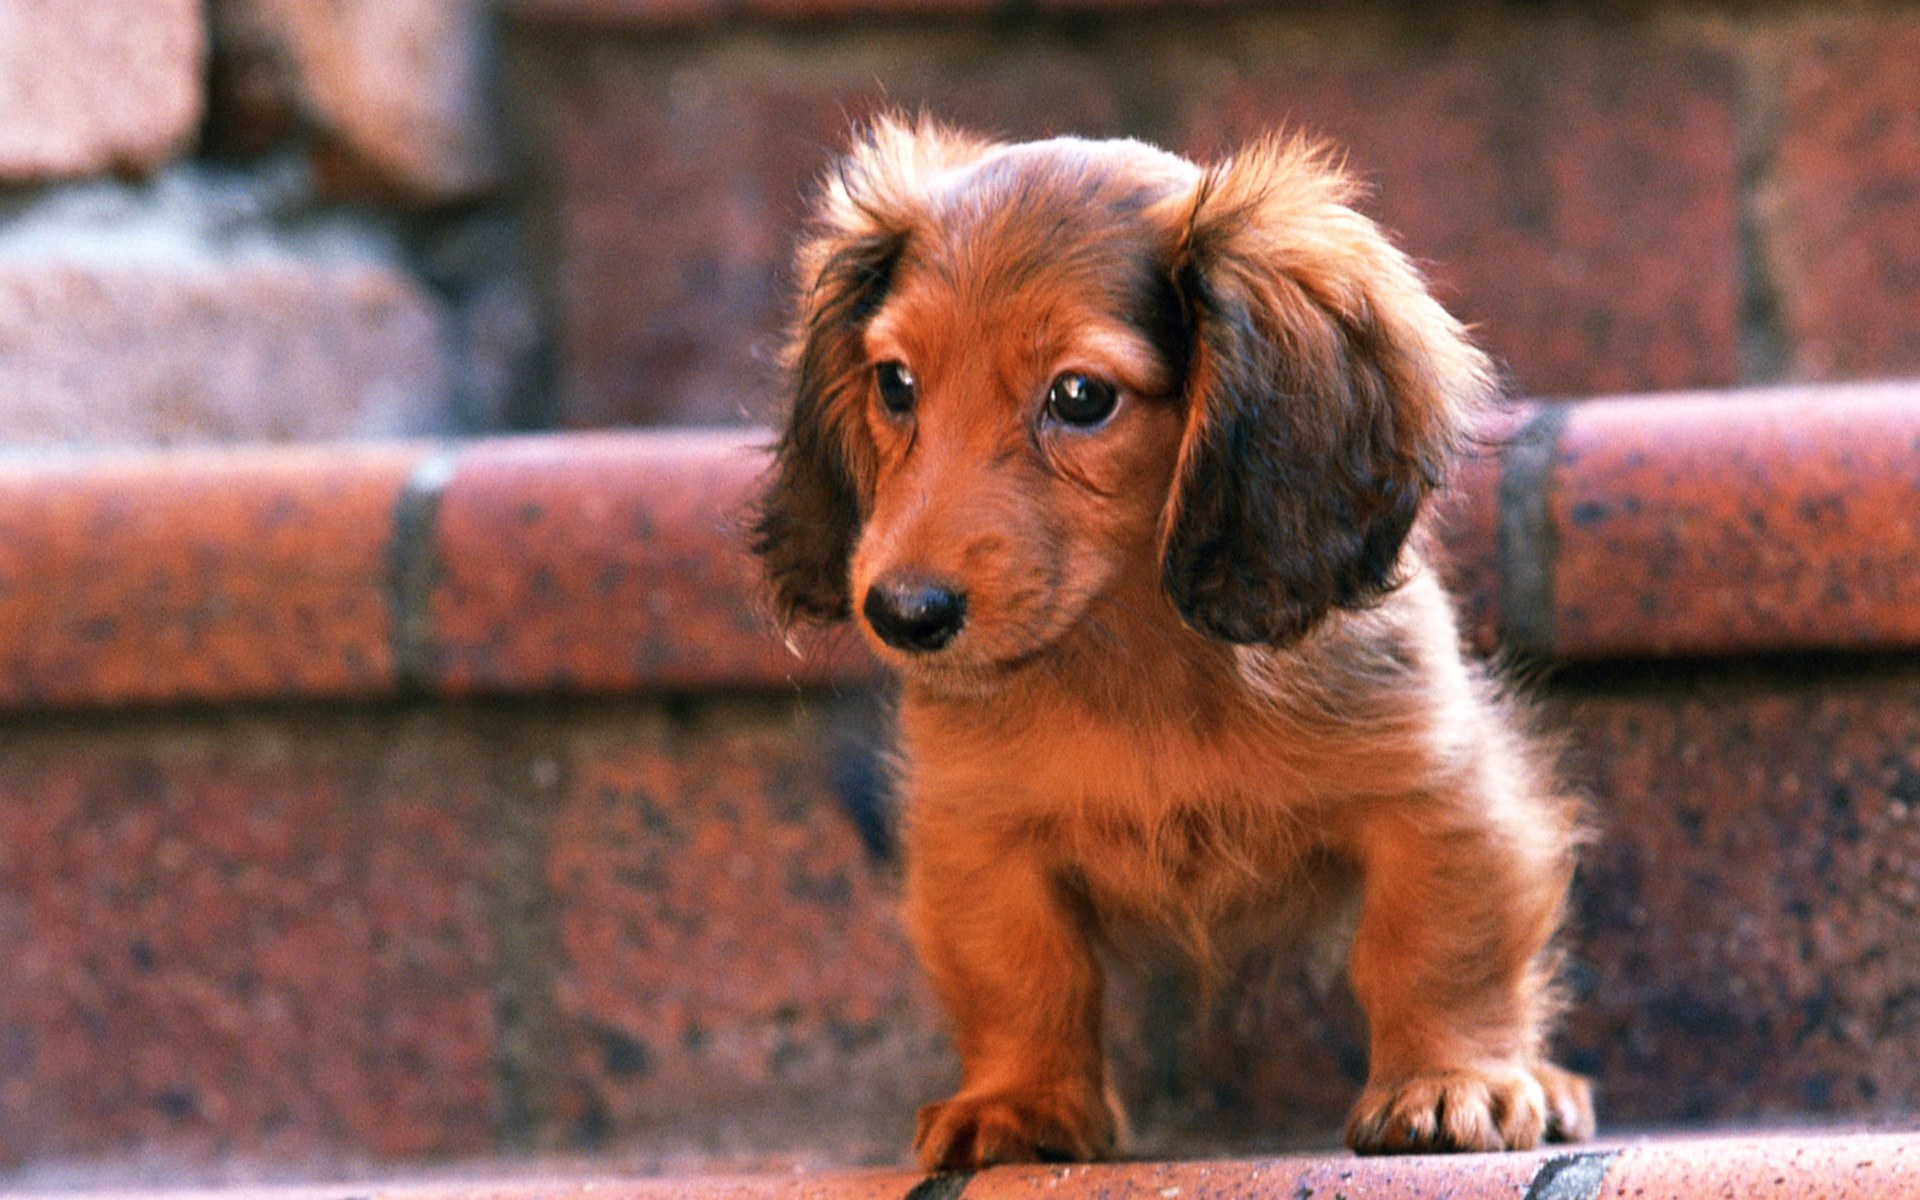 Wallpapers Blog Archive Black Mini Dachshund Puppy Wallpaper 1920x1200